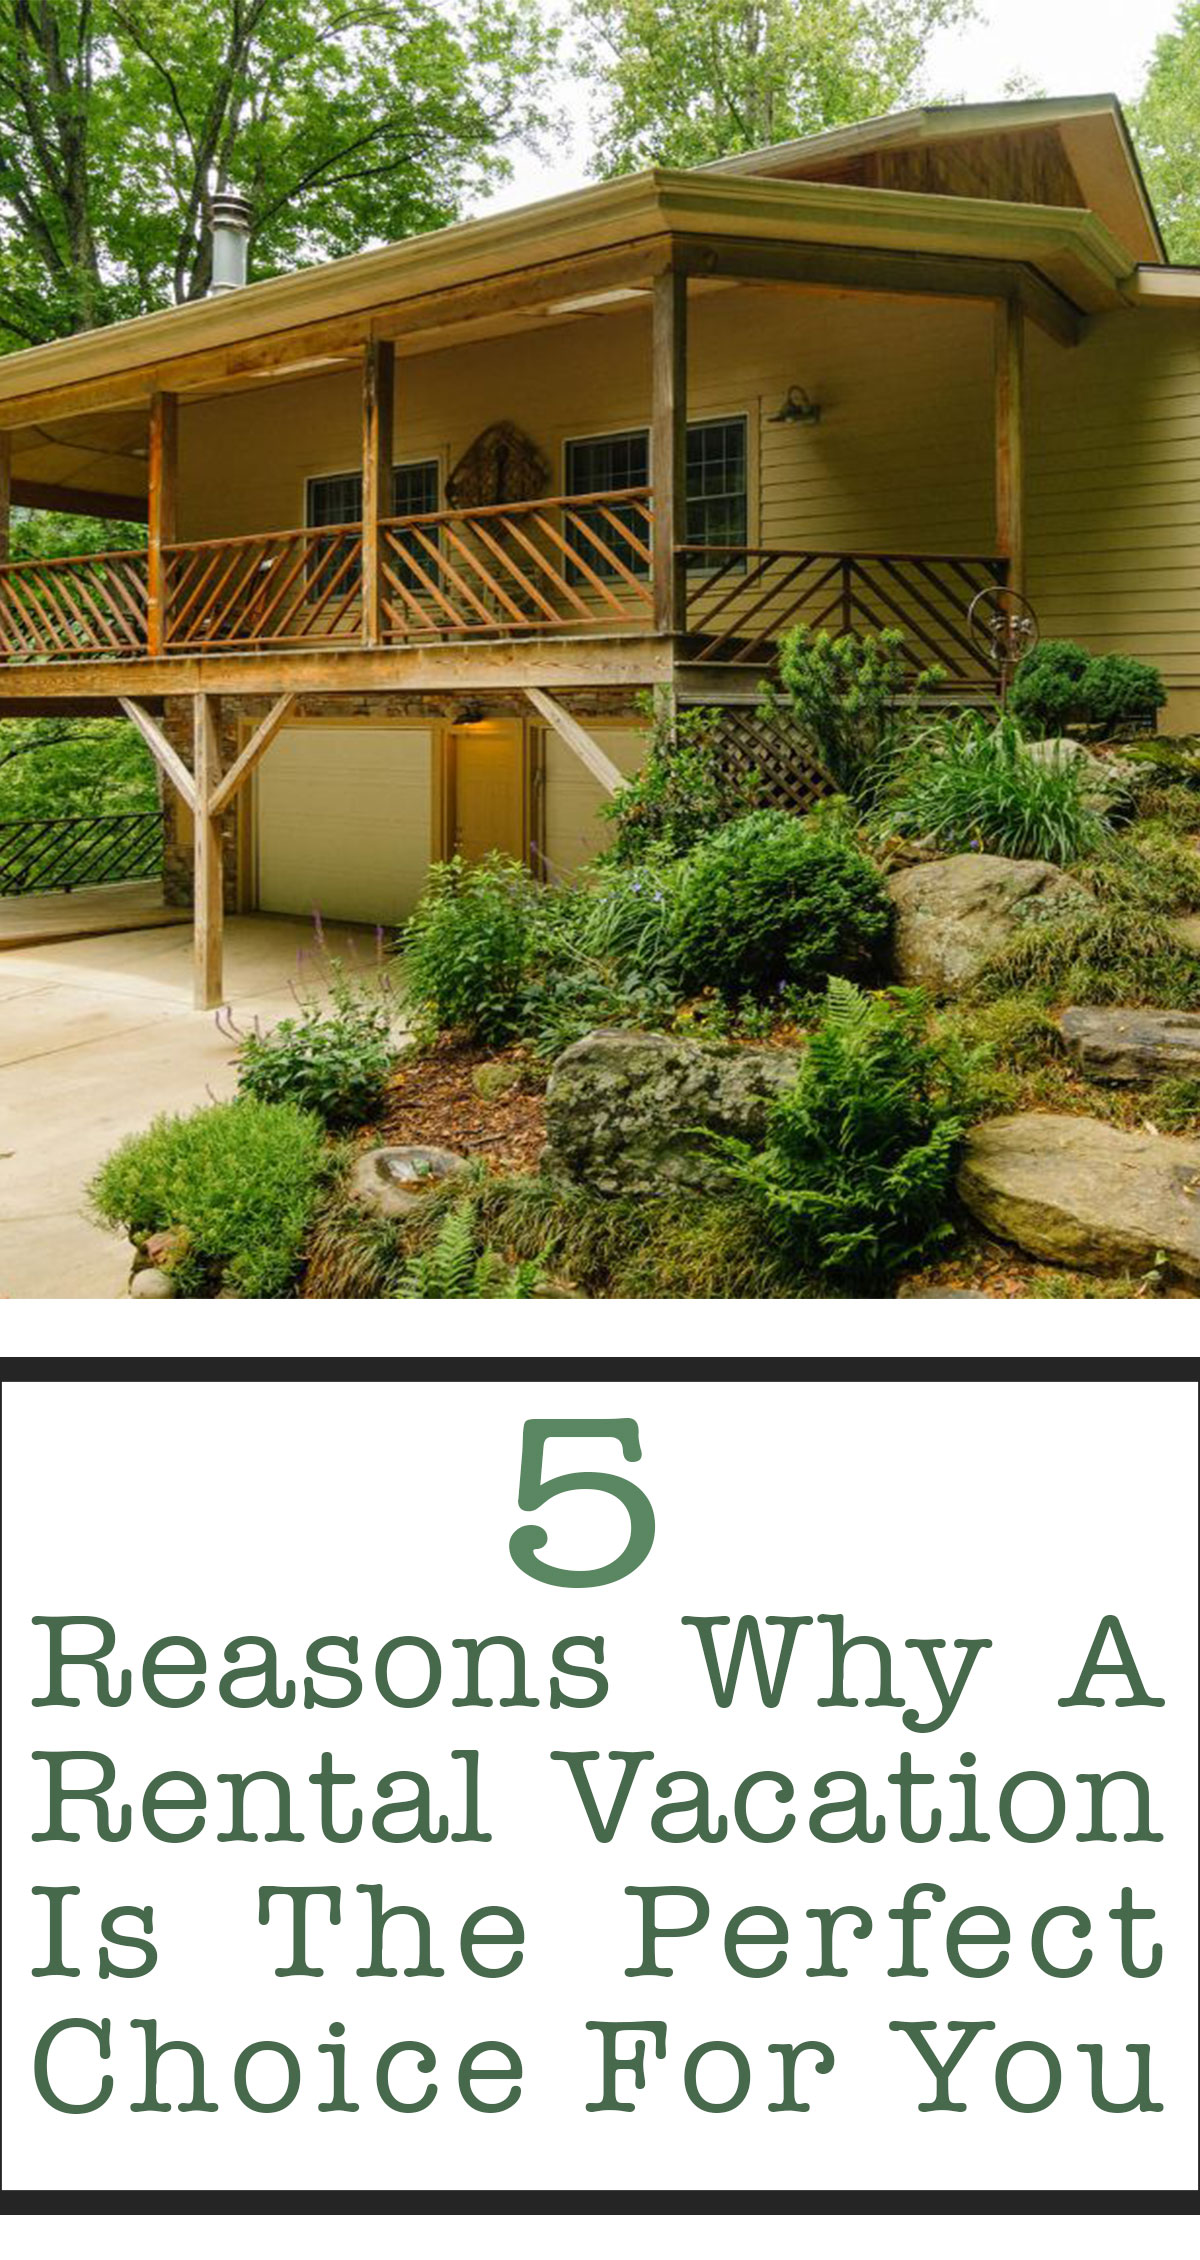 5 Reasons Why a Vacation Rental is the Perfect Choice for You Pin